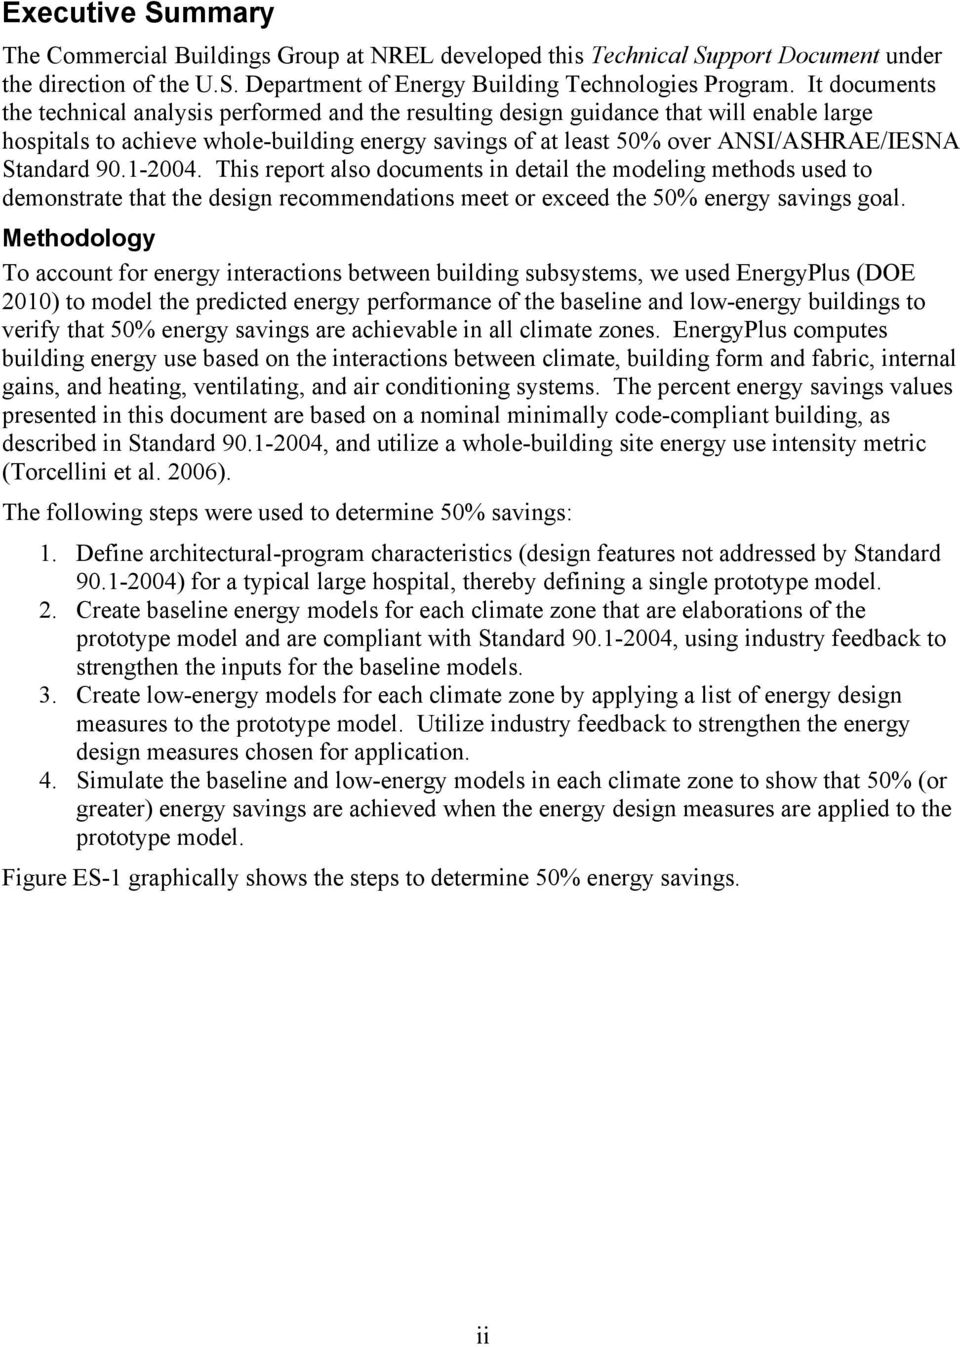 Standard 90.1-2004. This report also documents in detail the modeling methods used to demonstrate that the design recommendations meet or exceed the 50% energy savings goal.